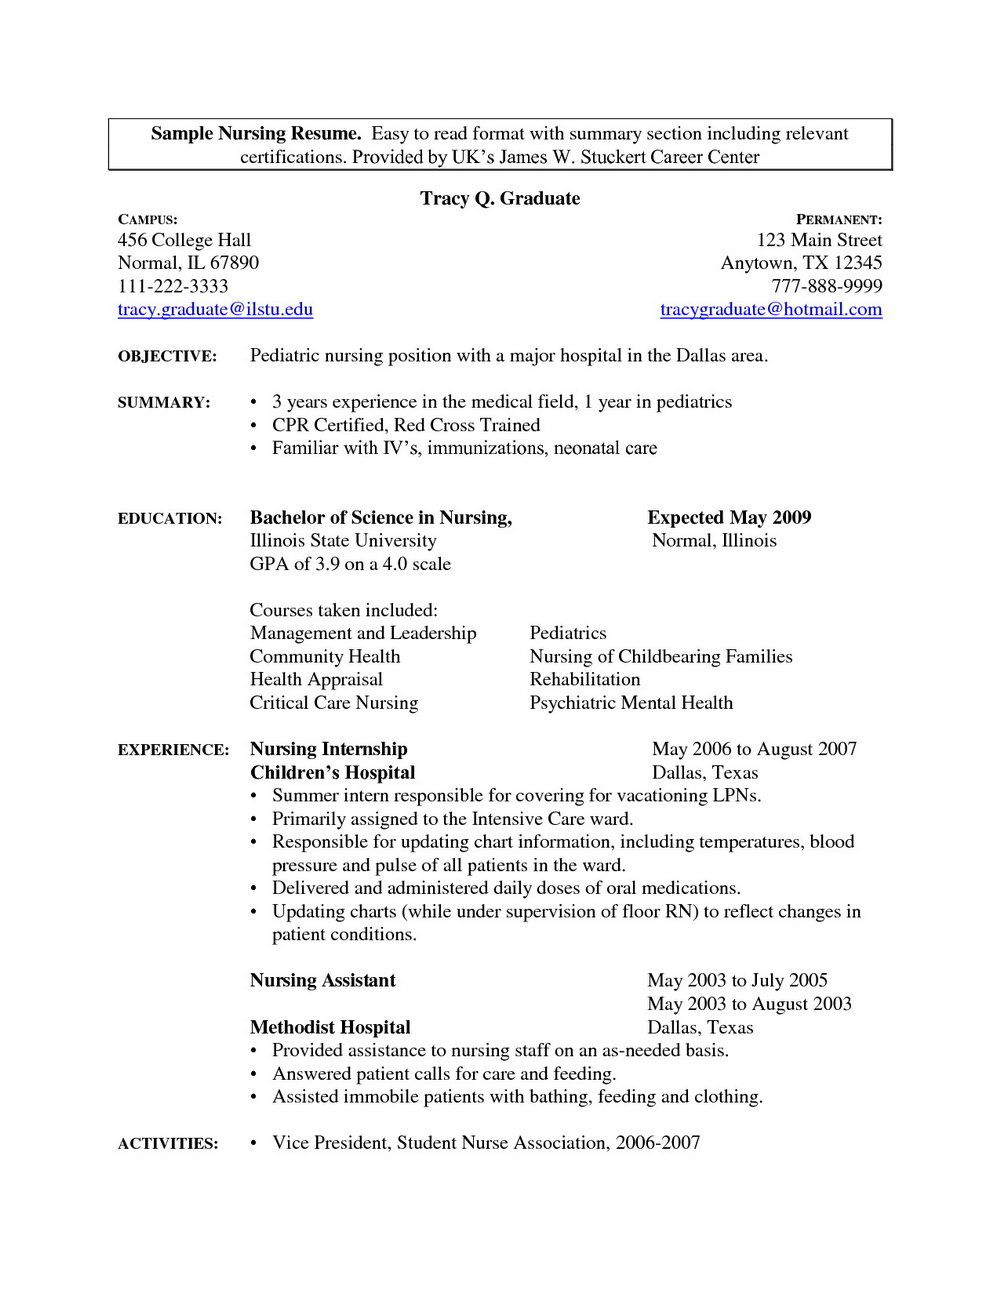 Resume For Nursing Assistant With Experience